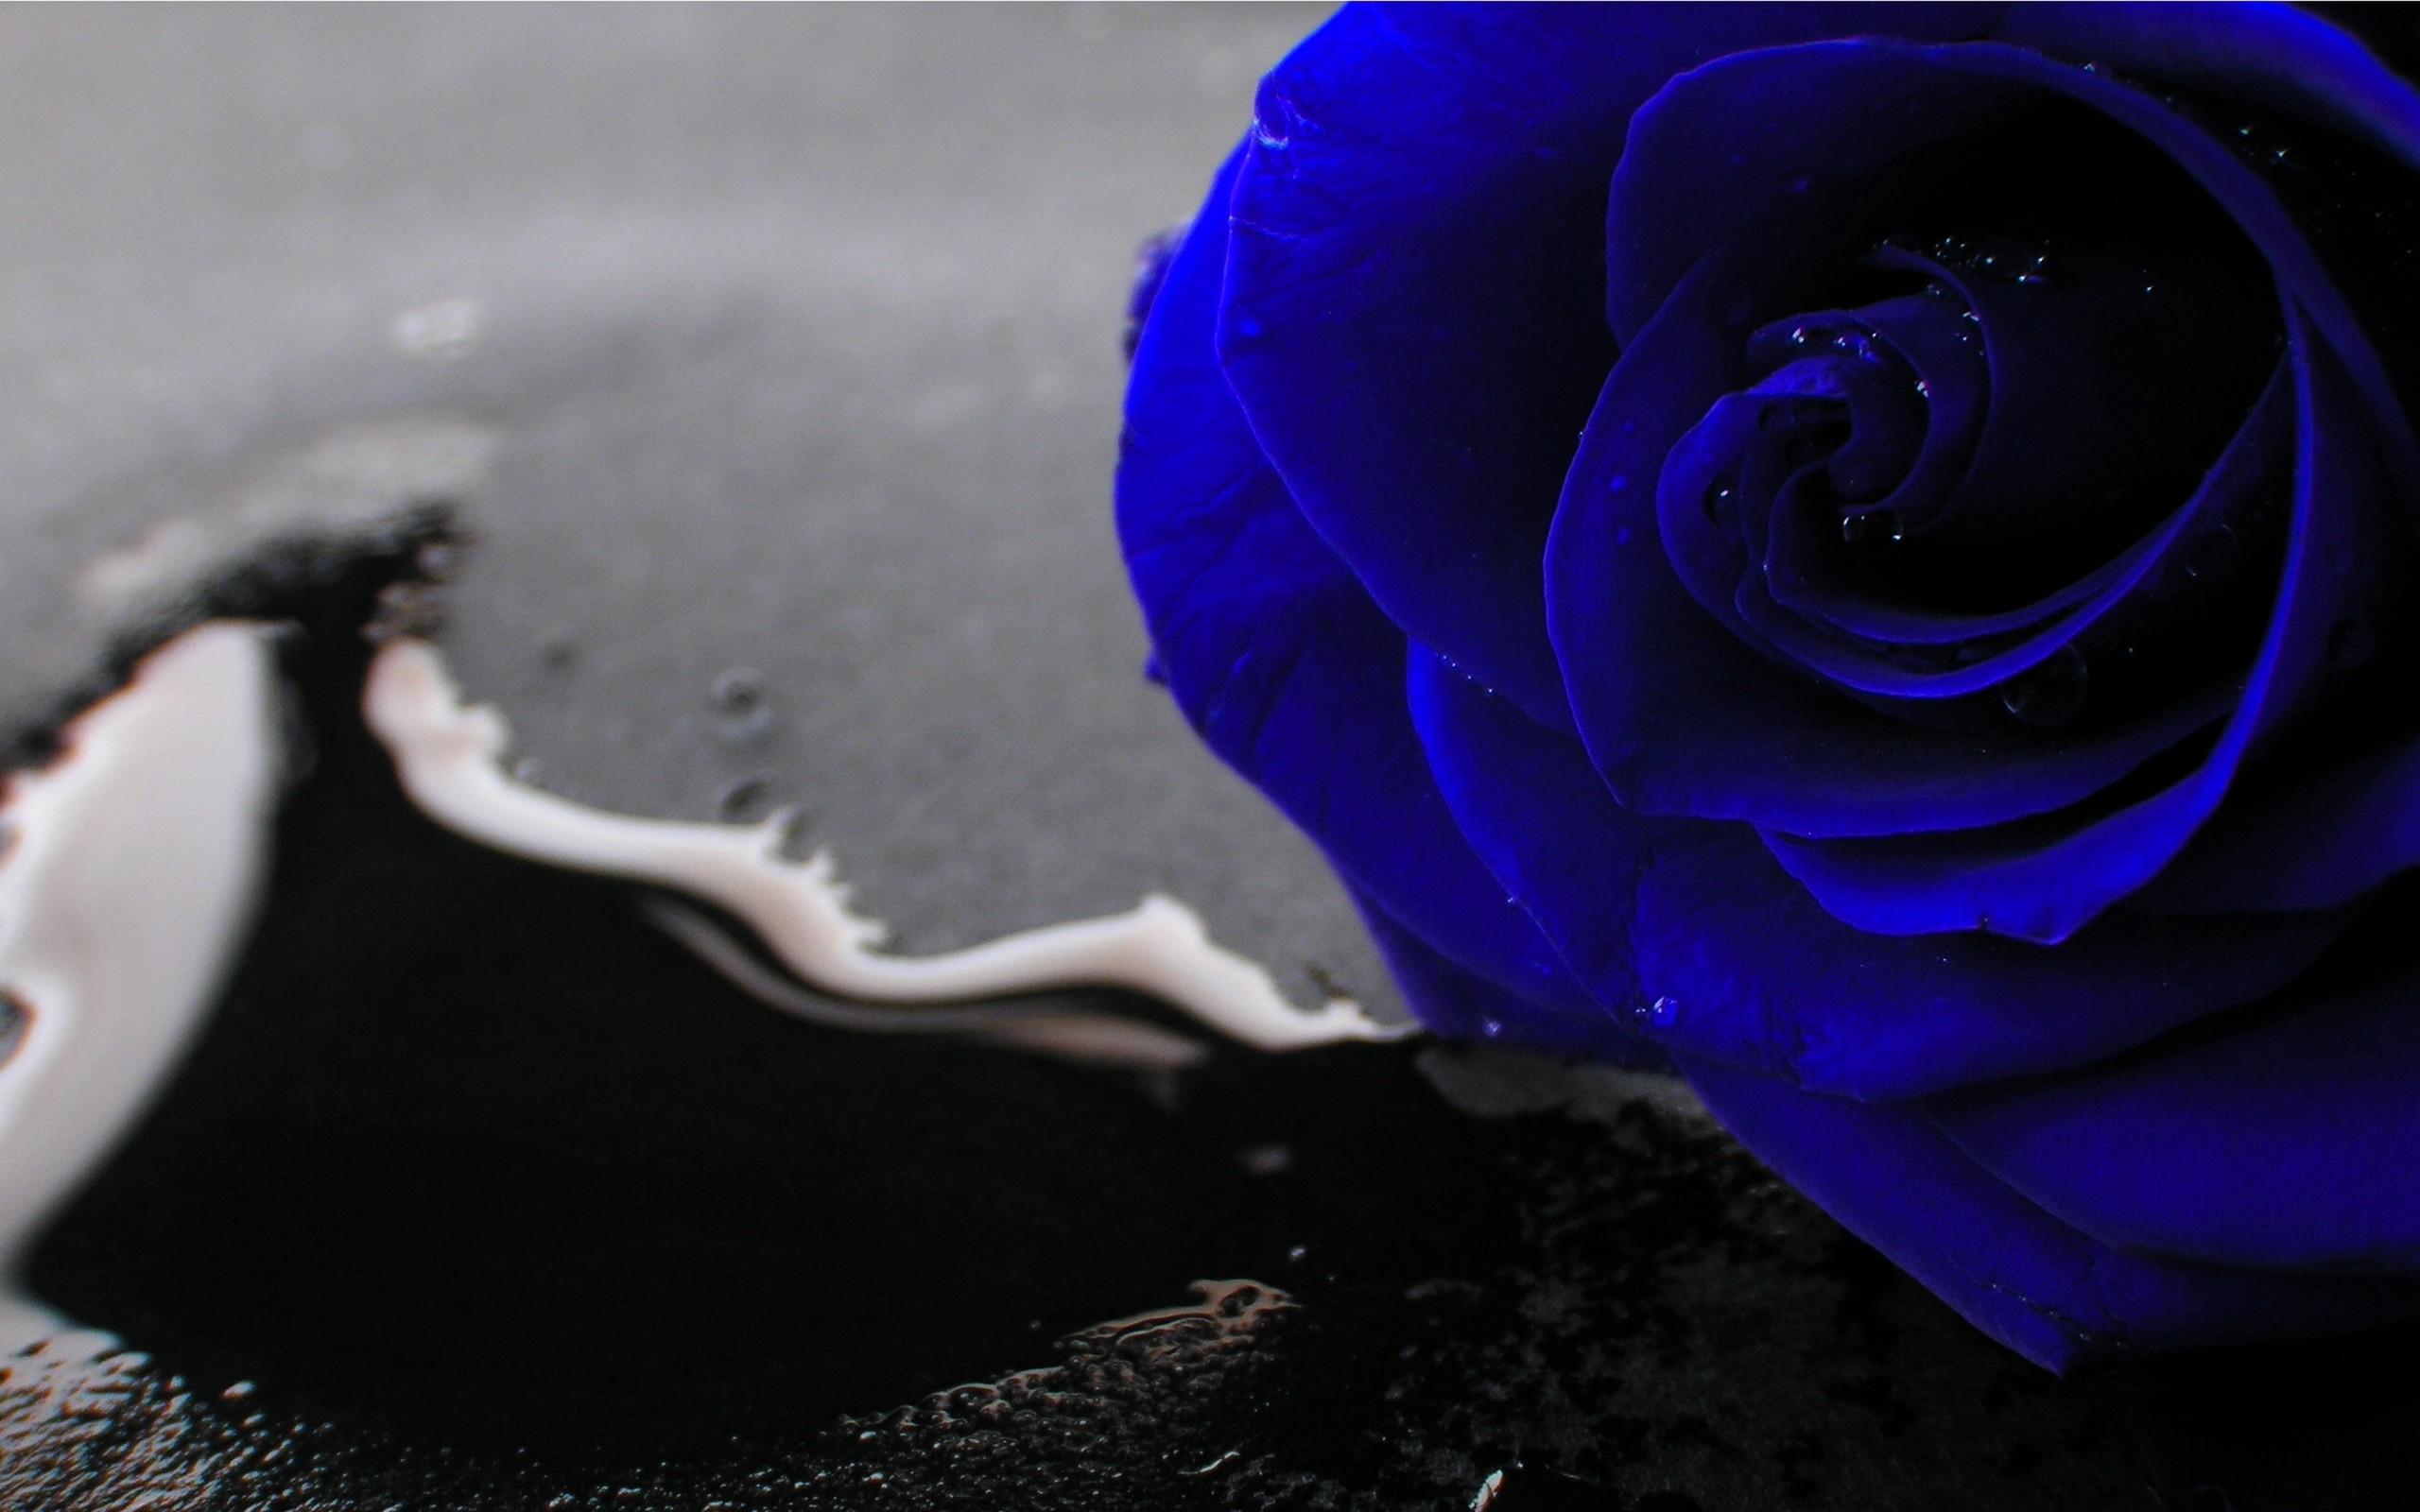 Hd Wallpapers 1080p Blue Rose Full Hd Blue Rose 657941 Hd Wallpaper Backgrounds Download